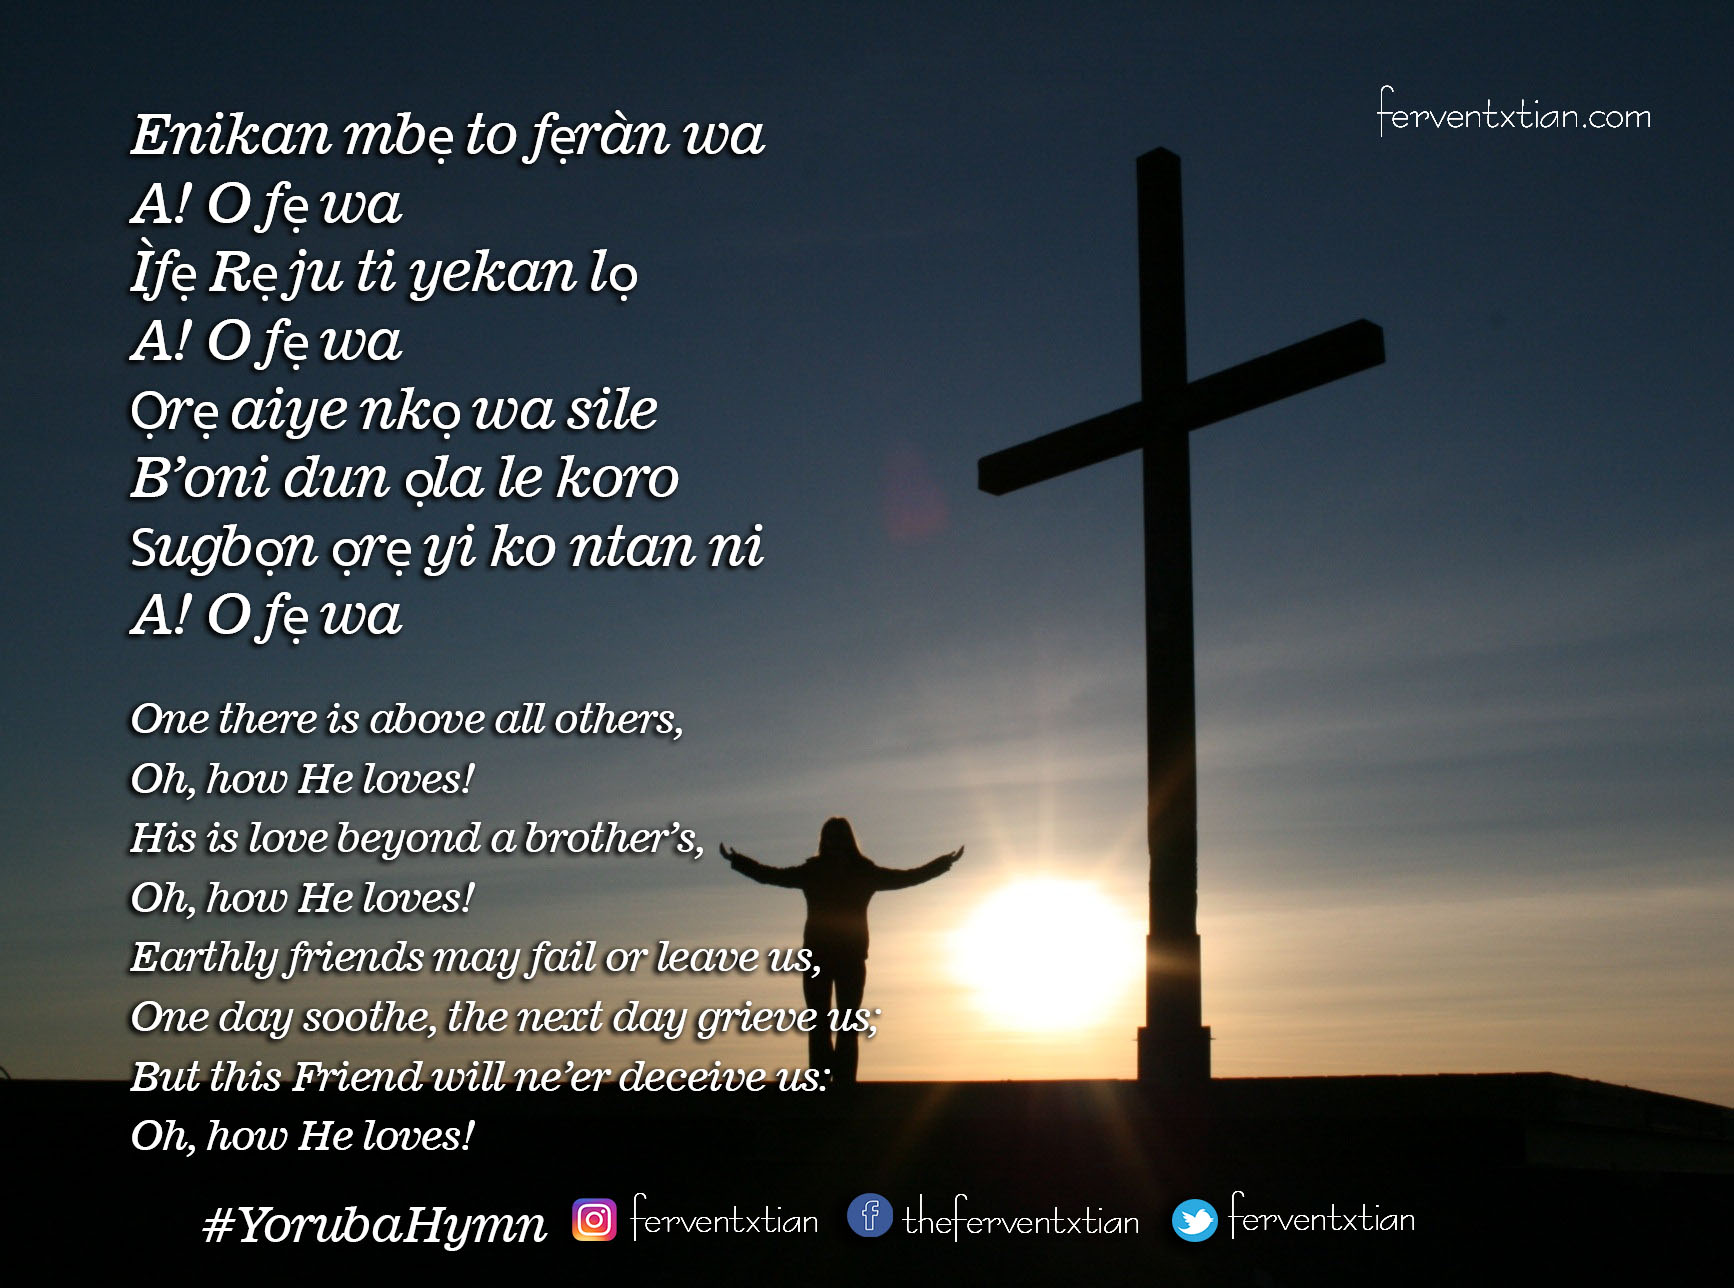 Yoruba Hymn – Enikan mbẹ to fẹràn wa – One there is above all others